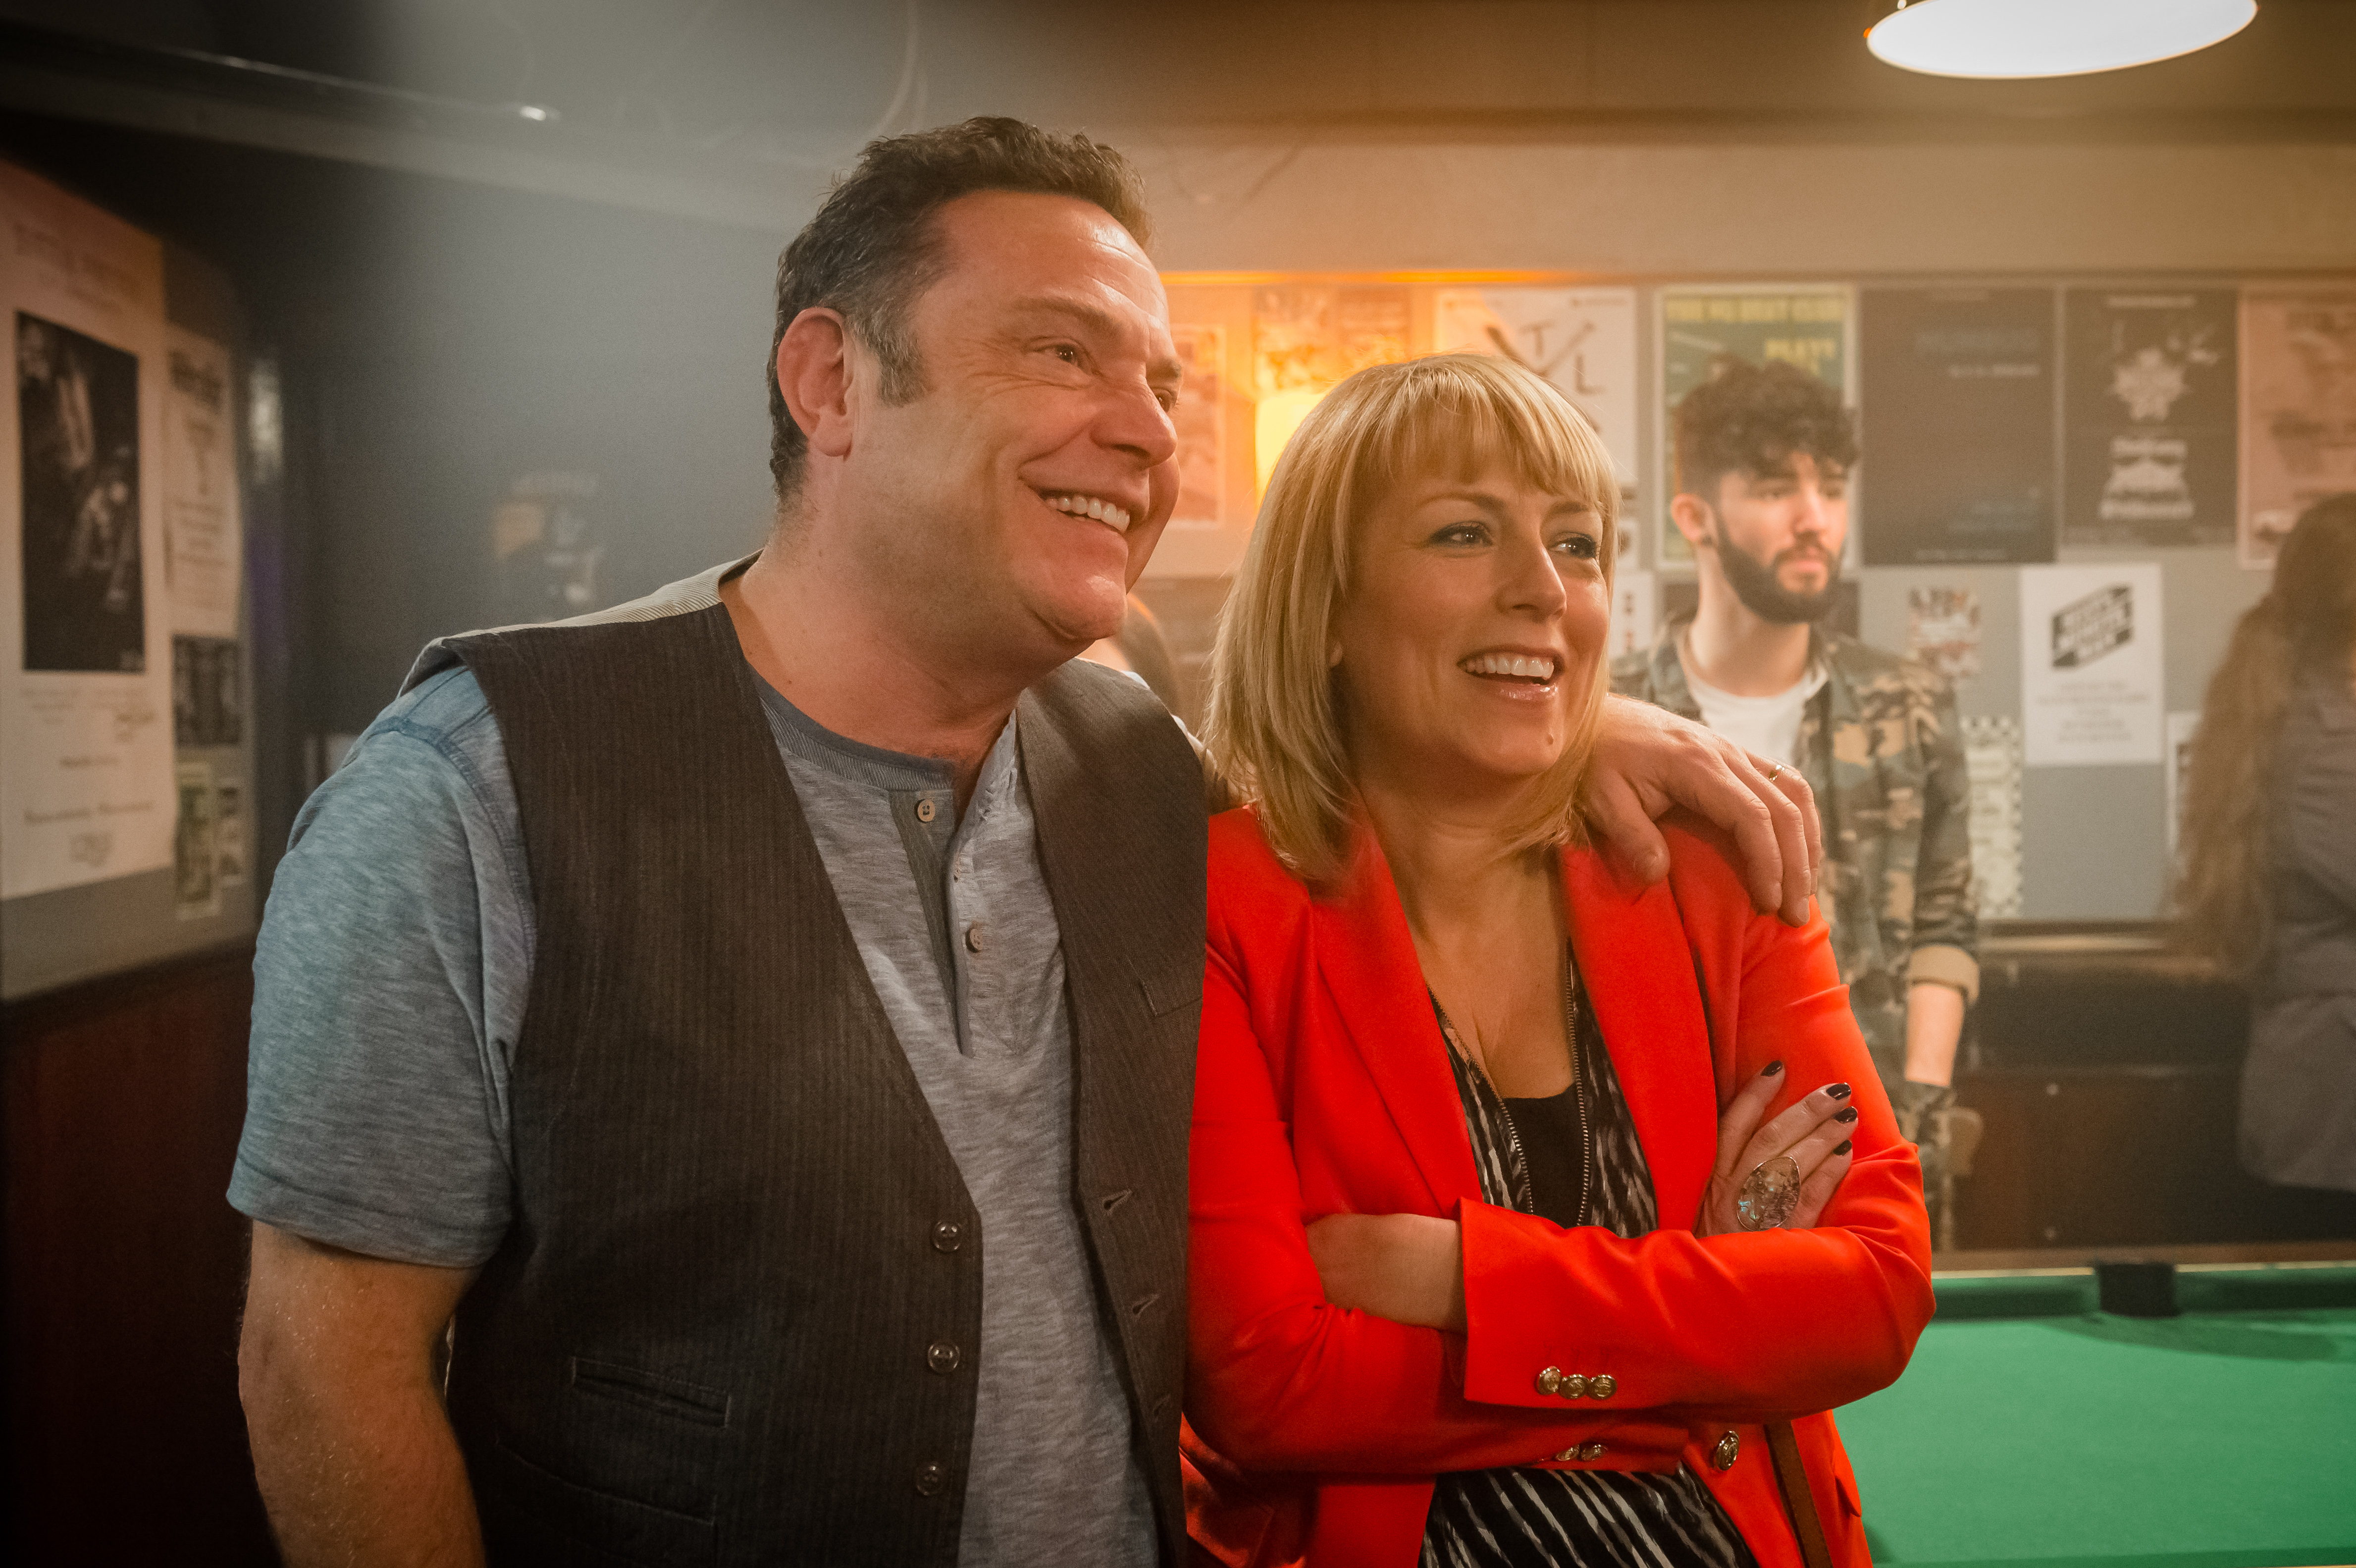 pete and jen series 6 episode 6 cold feet